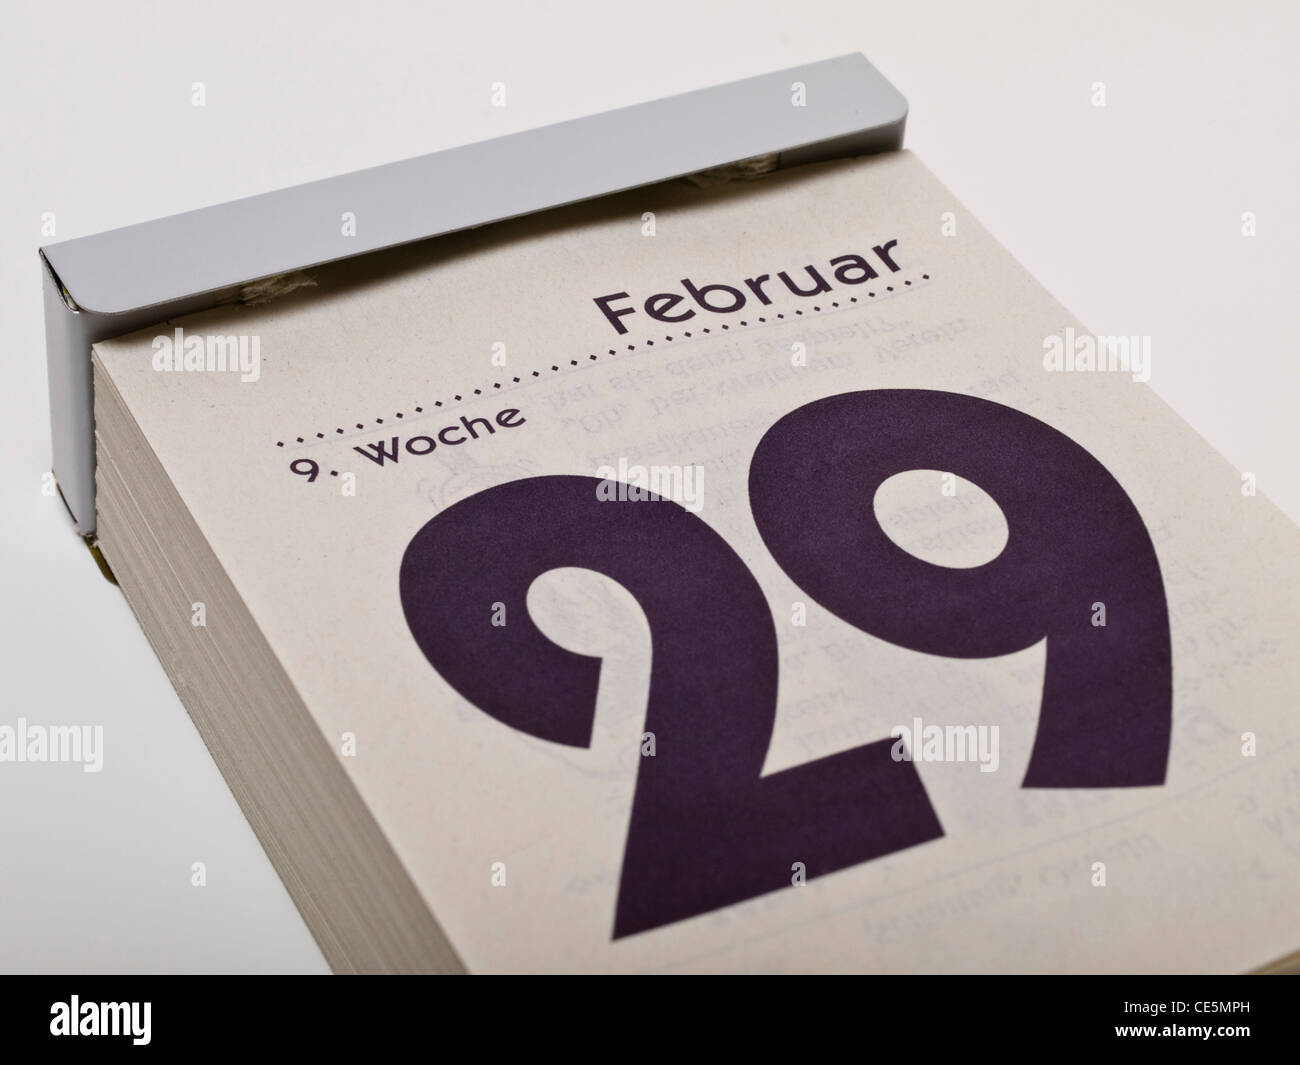 Ein Kalender zeigt den 29. Februar, Schalttag, an | A calendar shows February 29th, leap day - Stock Image